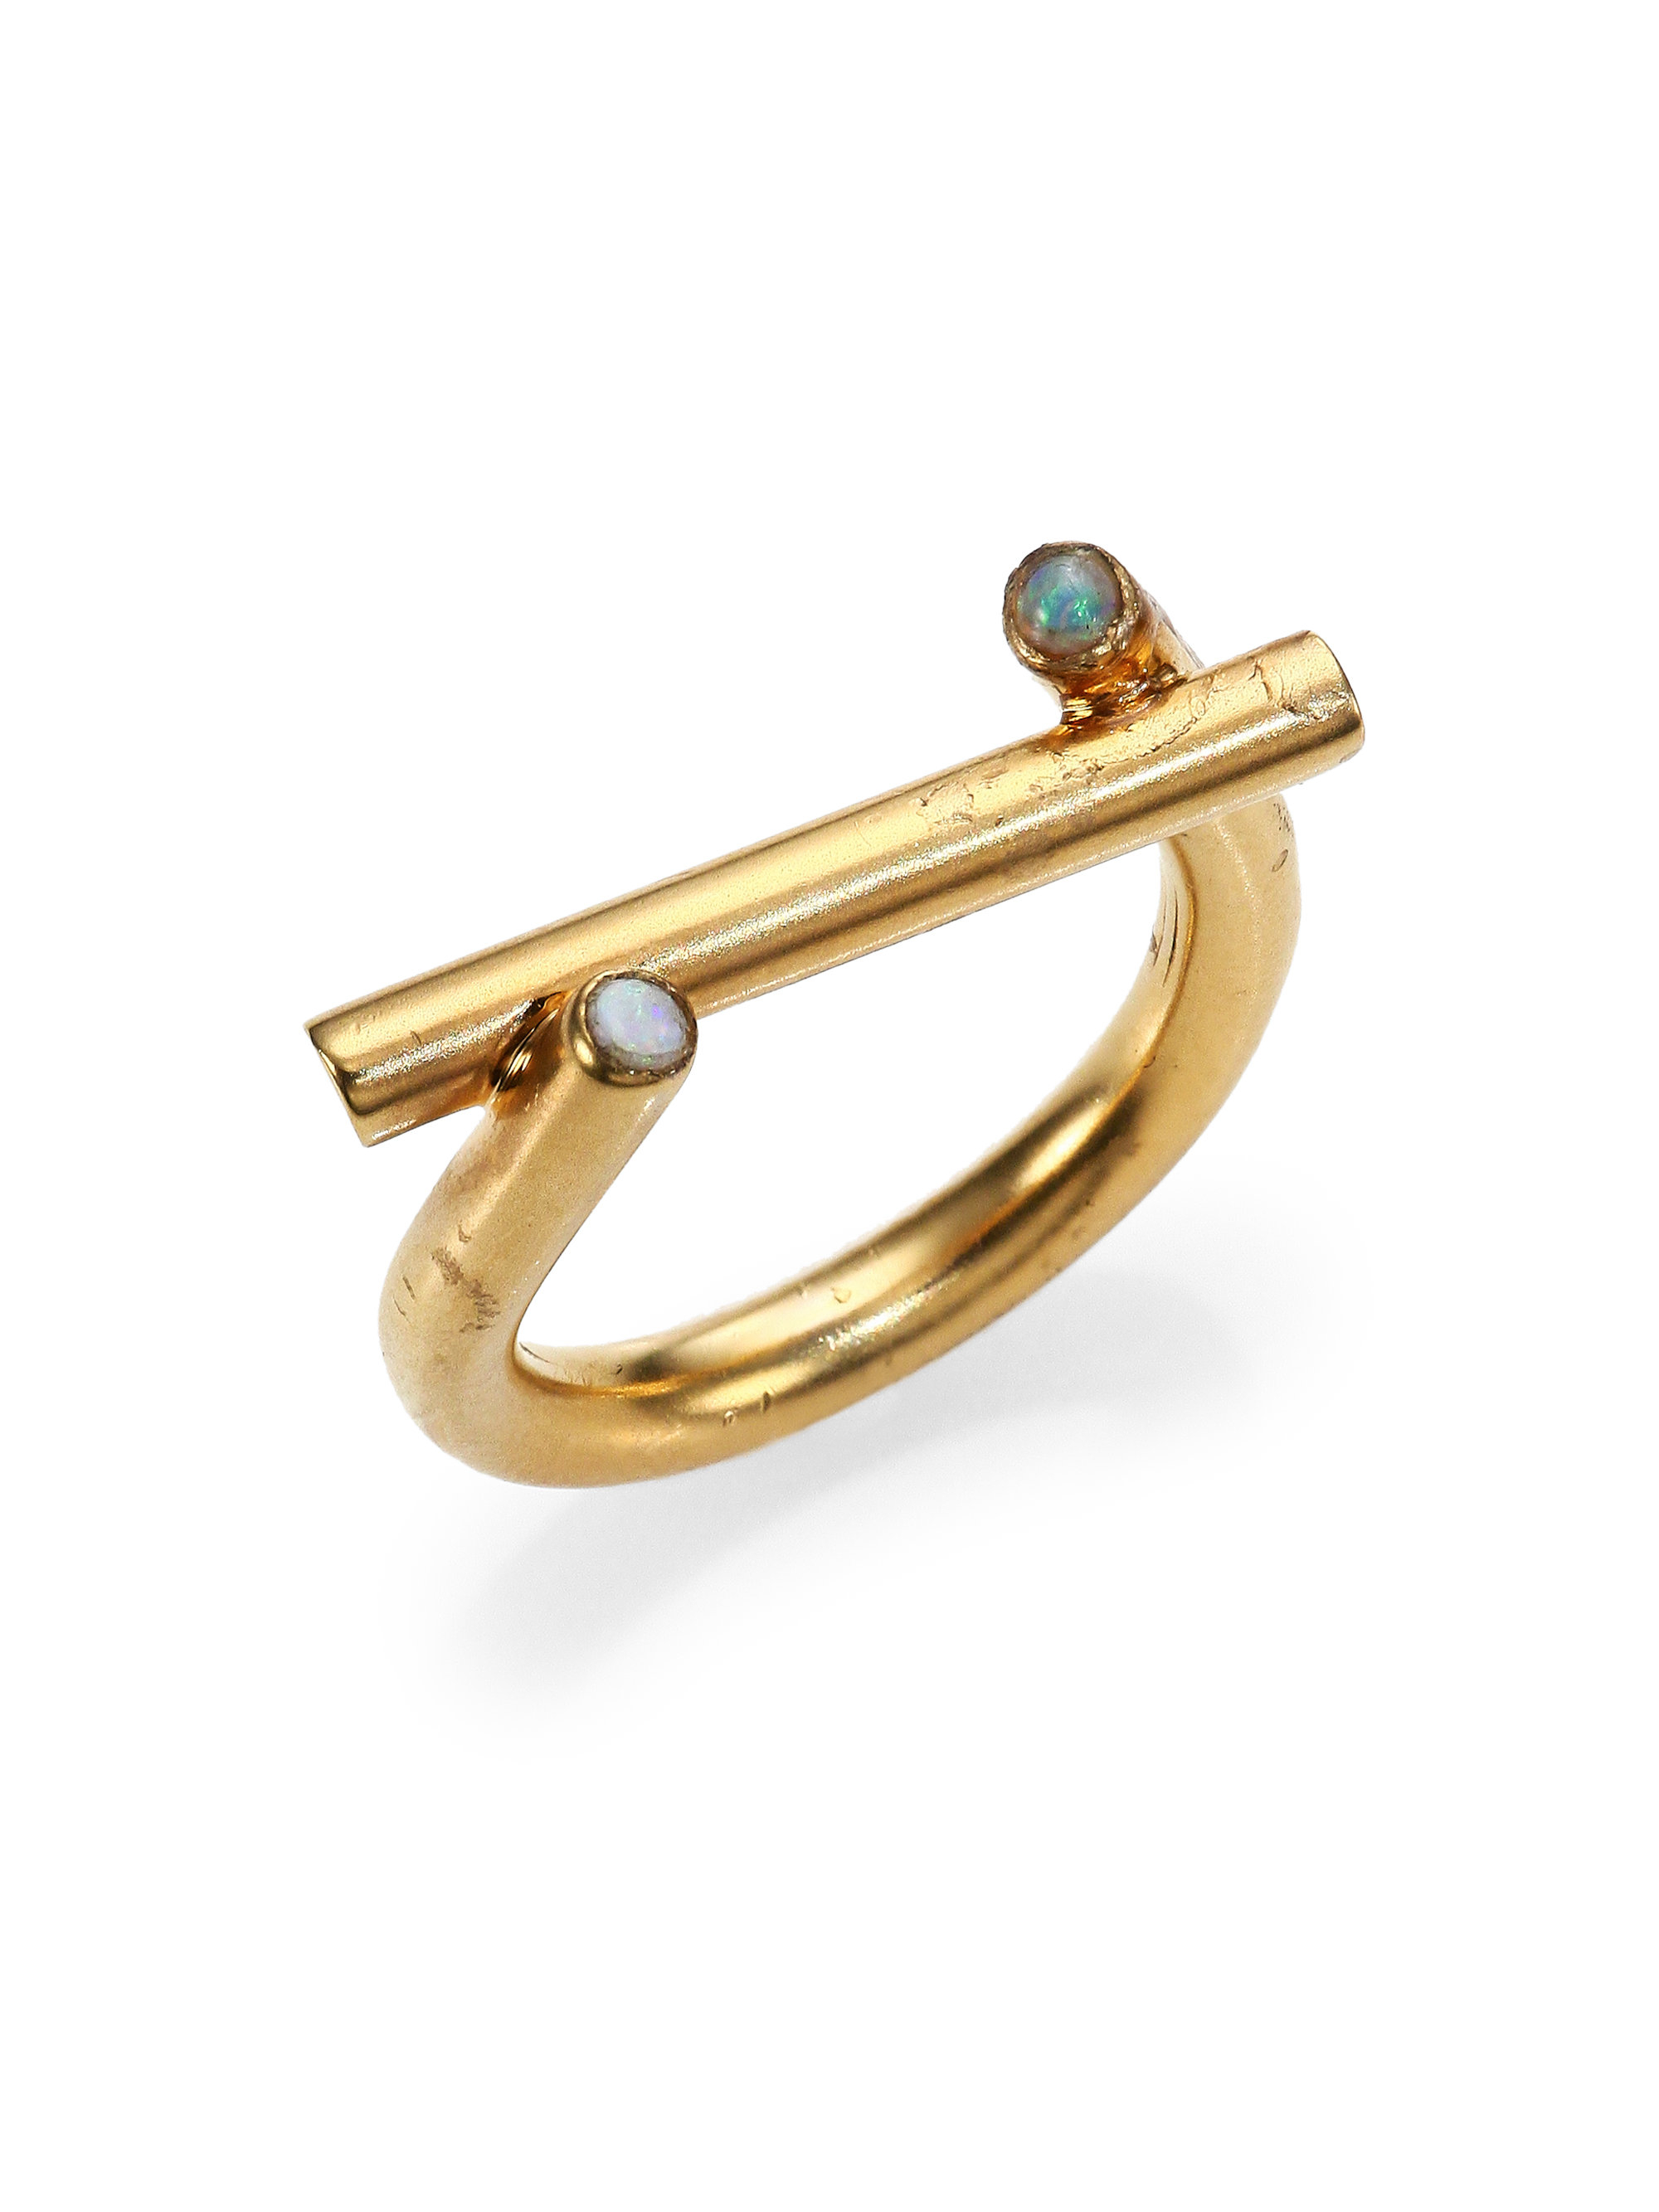 lyst normal rings gallery mina kelly moonstone ring jewelry product in metallic gold wearstler